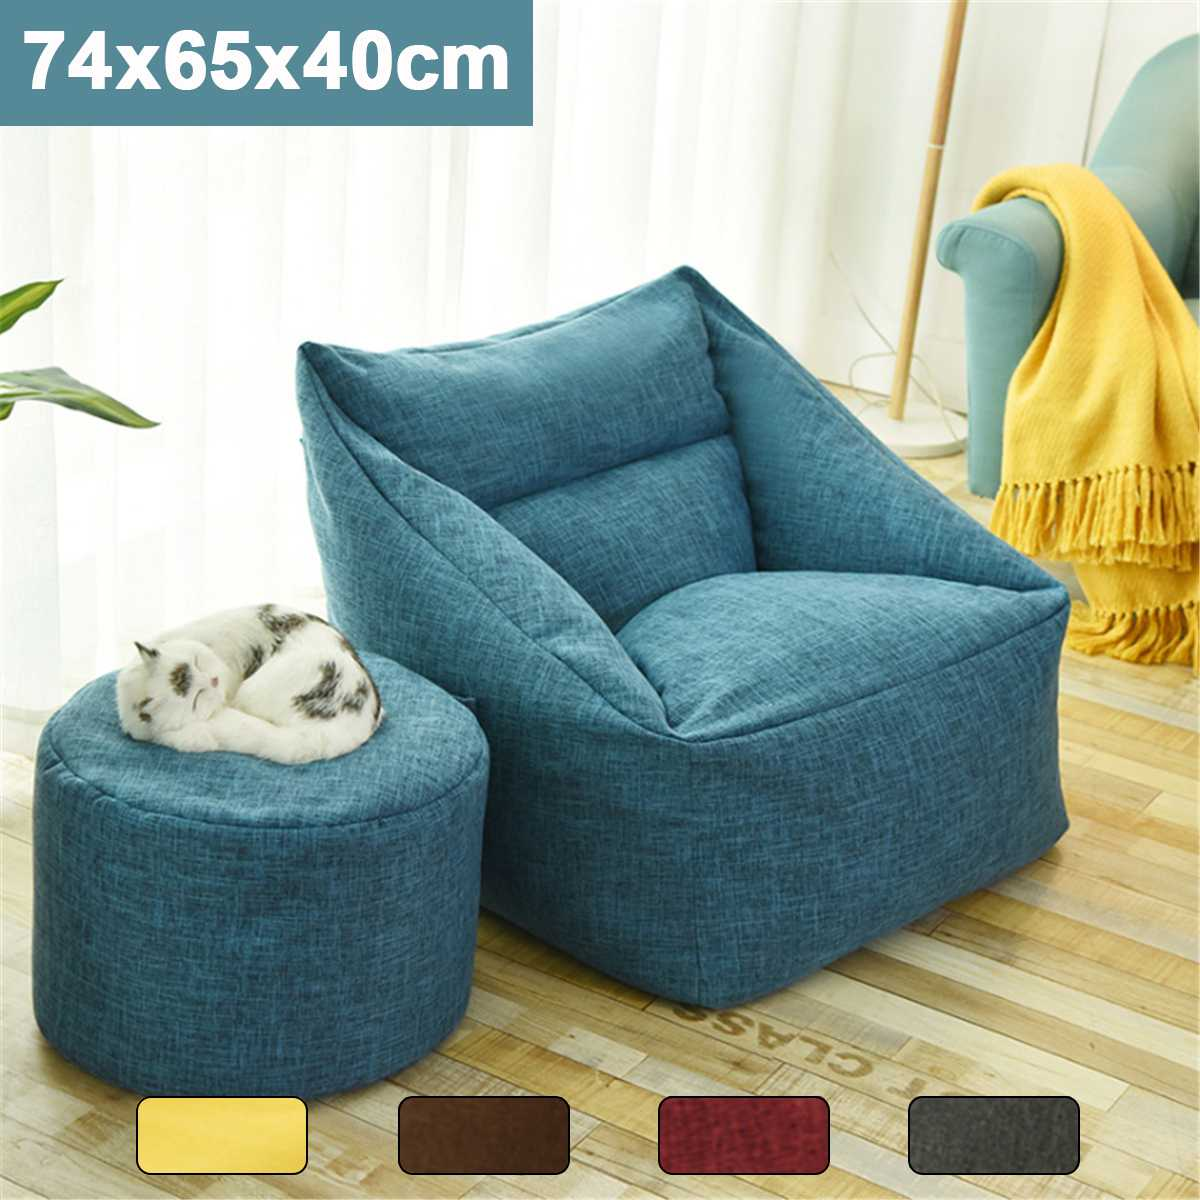 Us 32 59 41 Off Waterproof Bean Bag Lazy Sofa Beanbag Sofas Indoor Seat Chair Cover Large Bean Bag Cover Armchair Washable Room Furniture In Bean